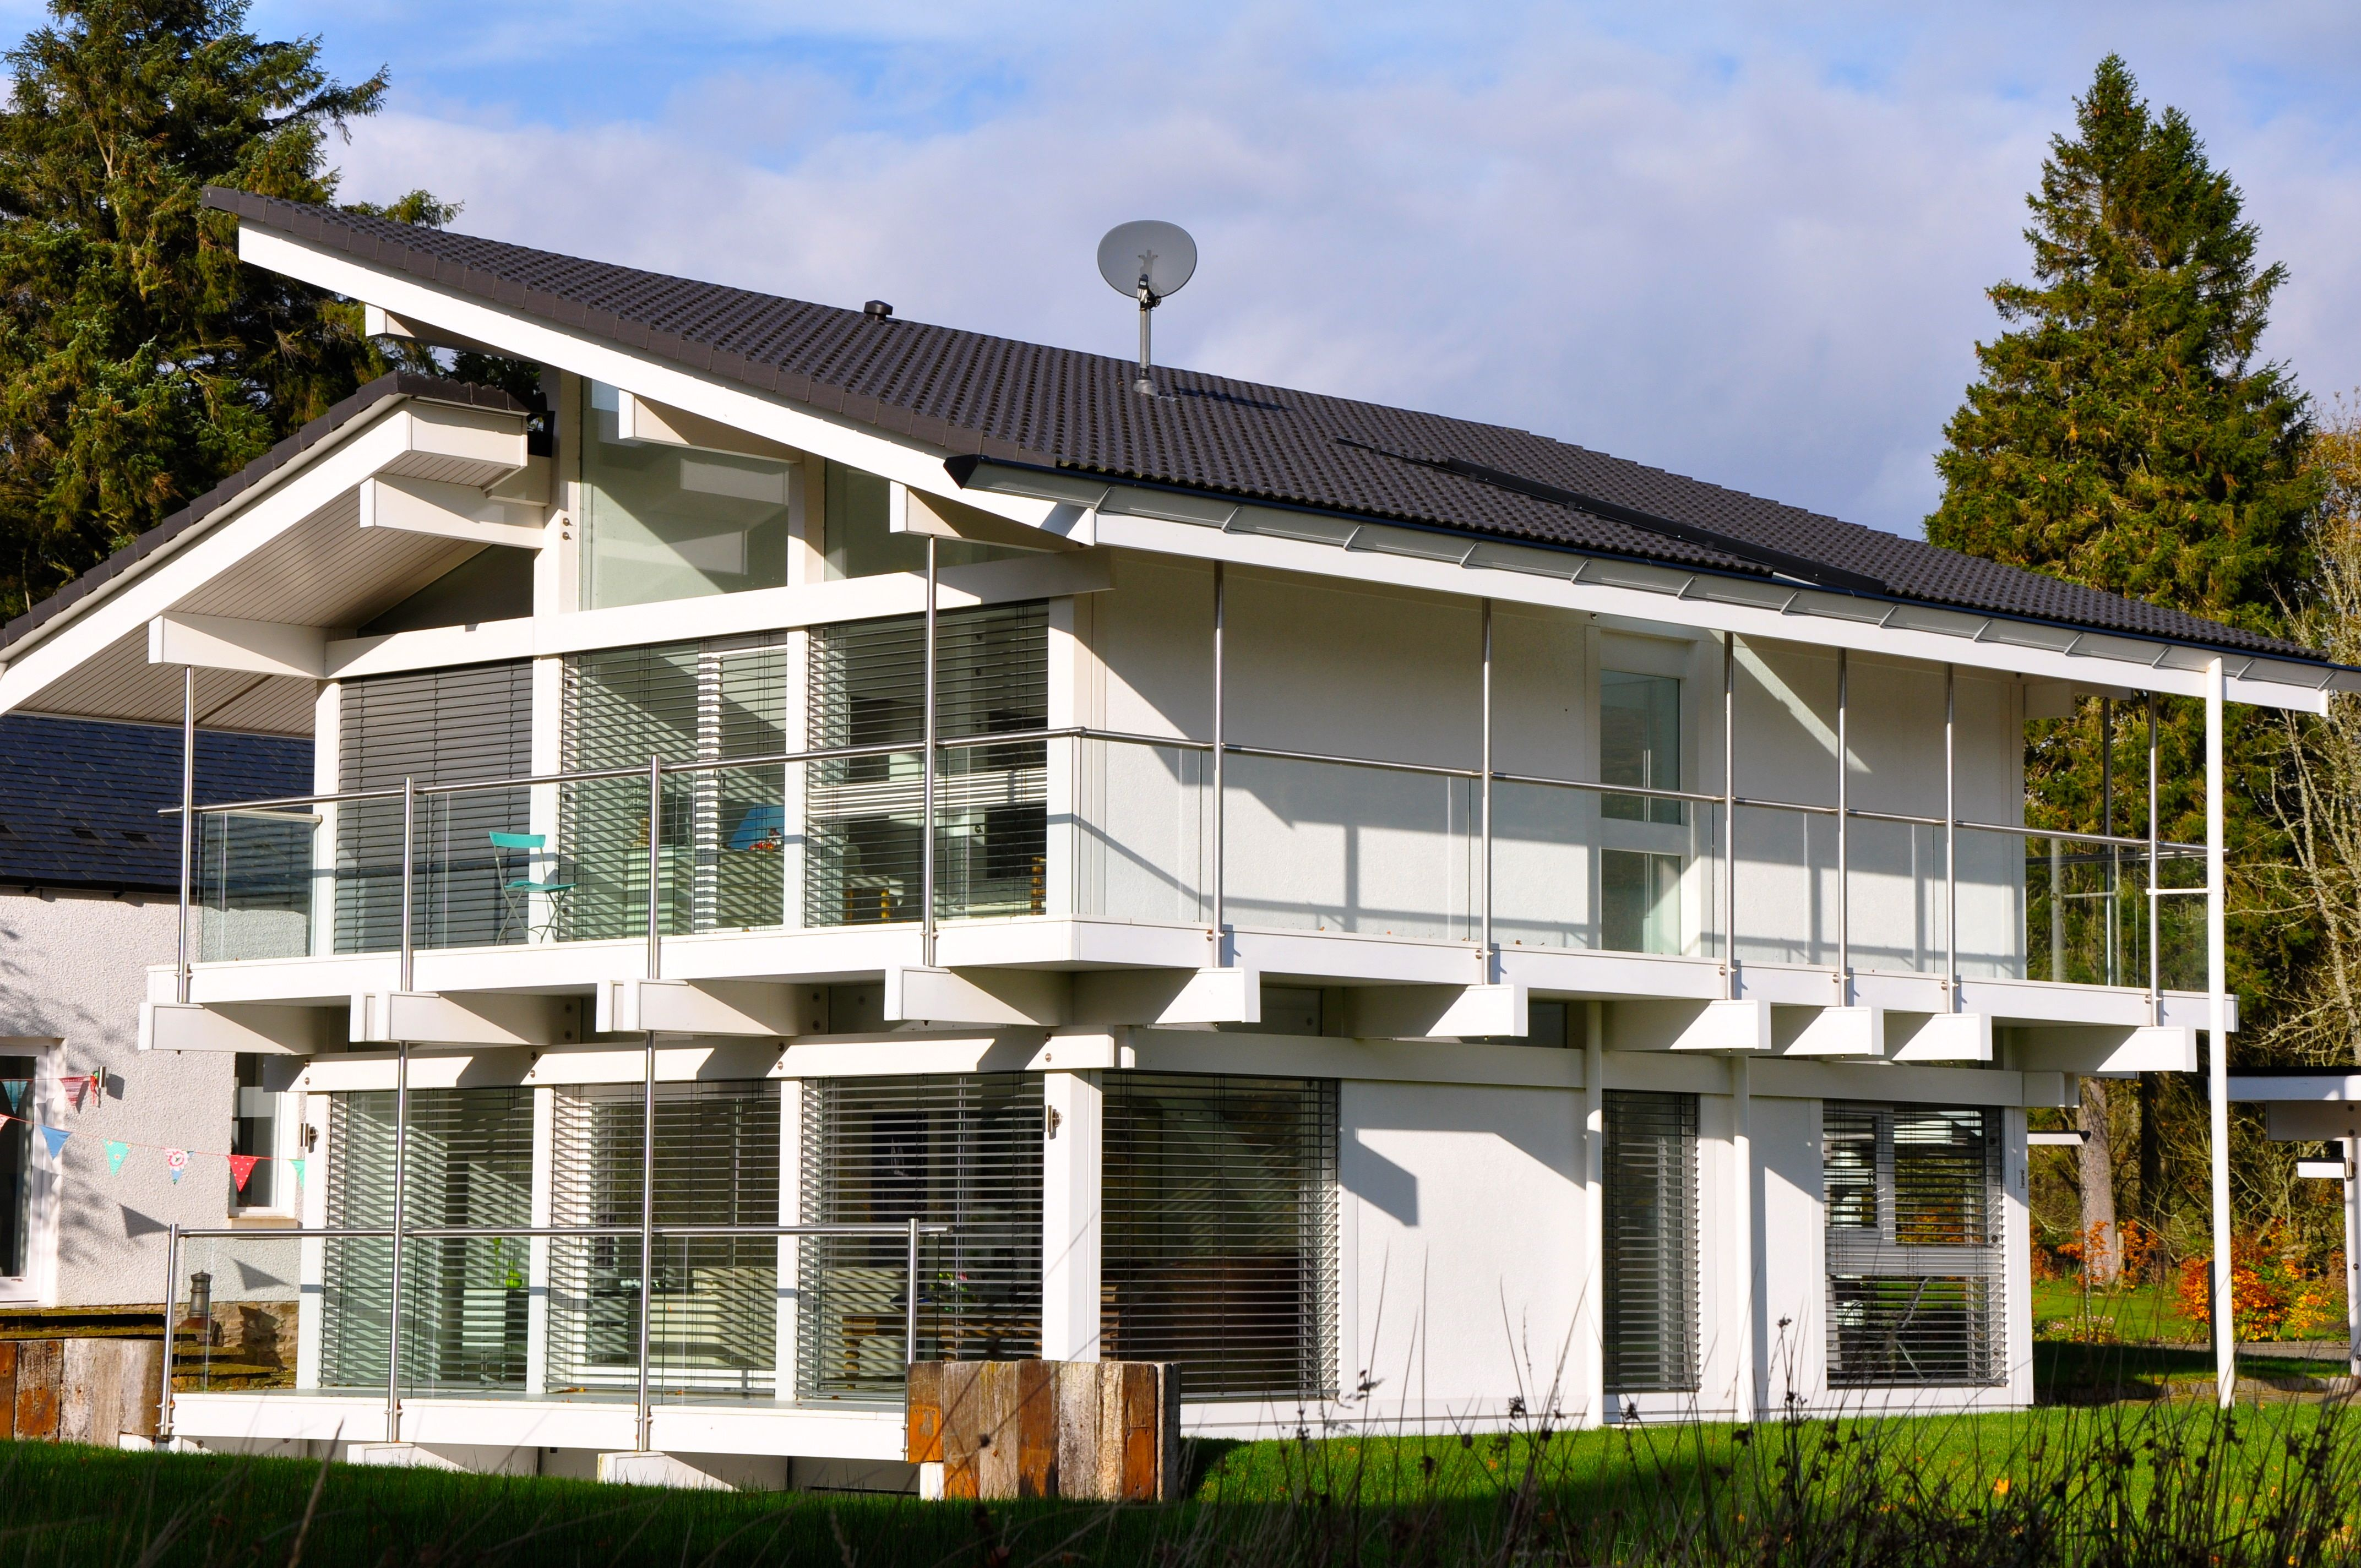 1000+ images about Huf Haus errace, osy room and Haus